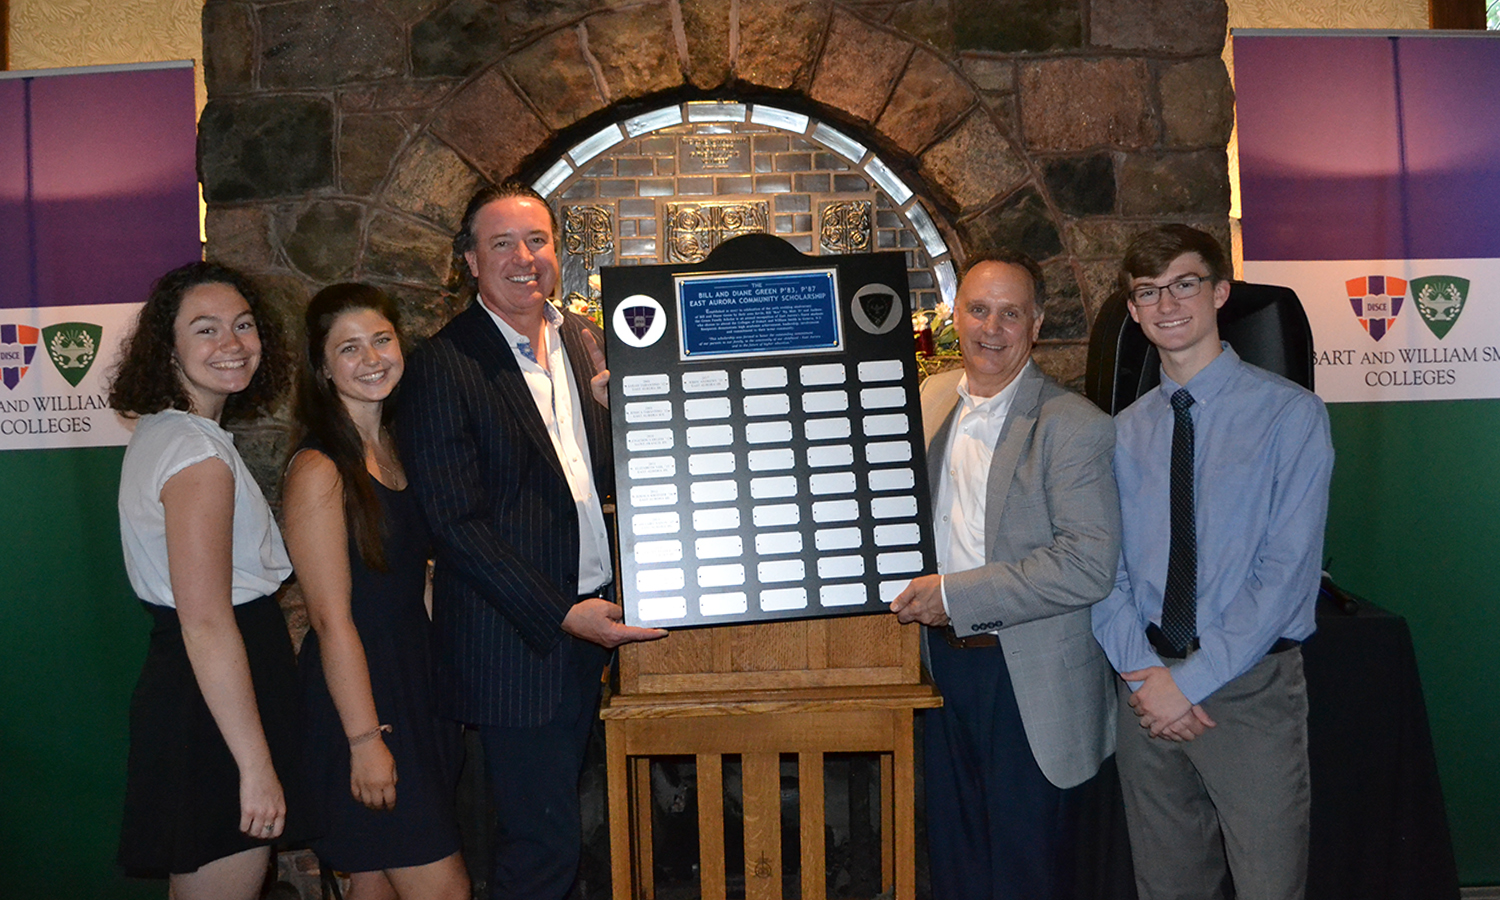 Wren G. Andrews '21, Teya R. Lucyshyn '19, William C. Green '83, CEO of the Boys and Girls Club of East Aurora Gary Schutrum and Jason W. Rose '22 pose for a photo during the Green Family Scholars reception at X.